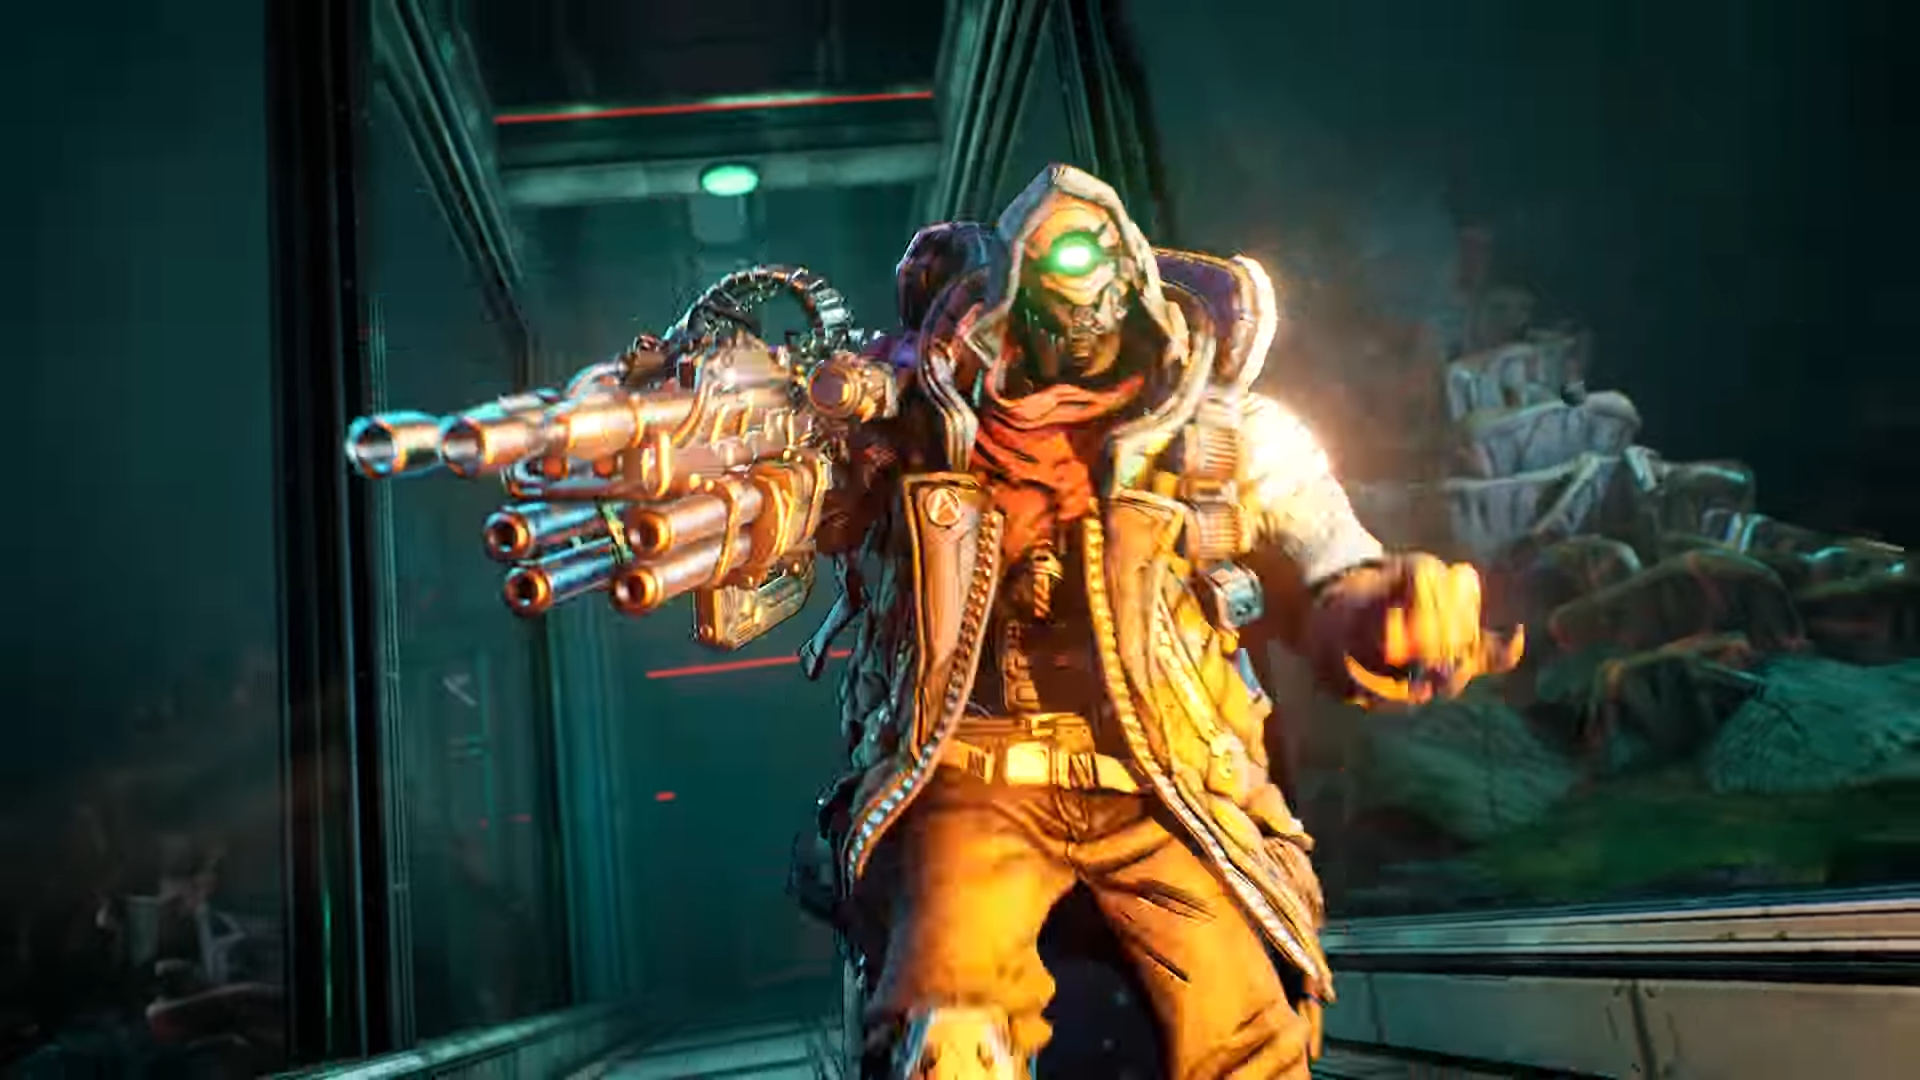 Borderlands 3 Deluxe Edition Content Is Now Available Separately